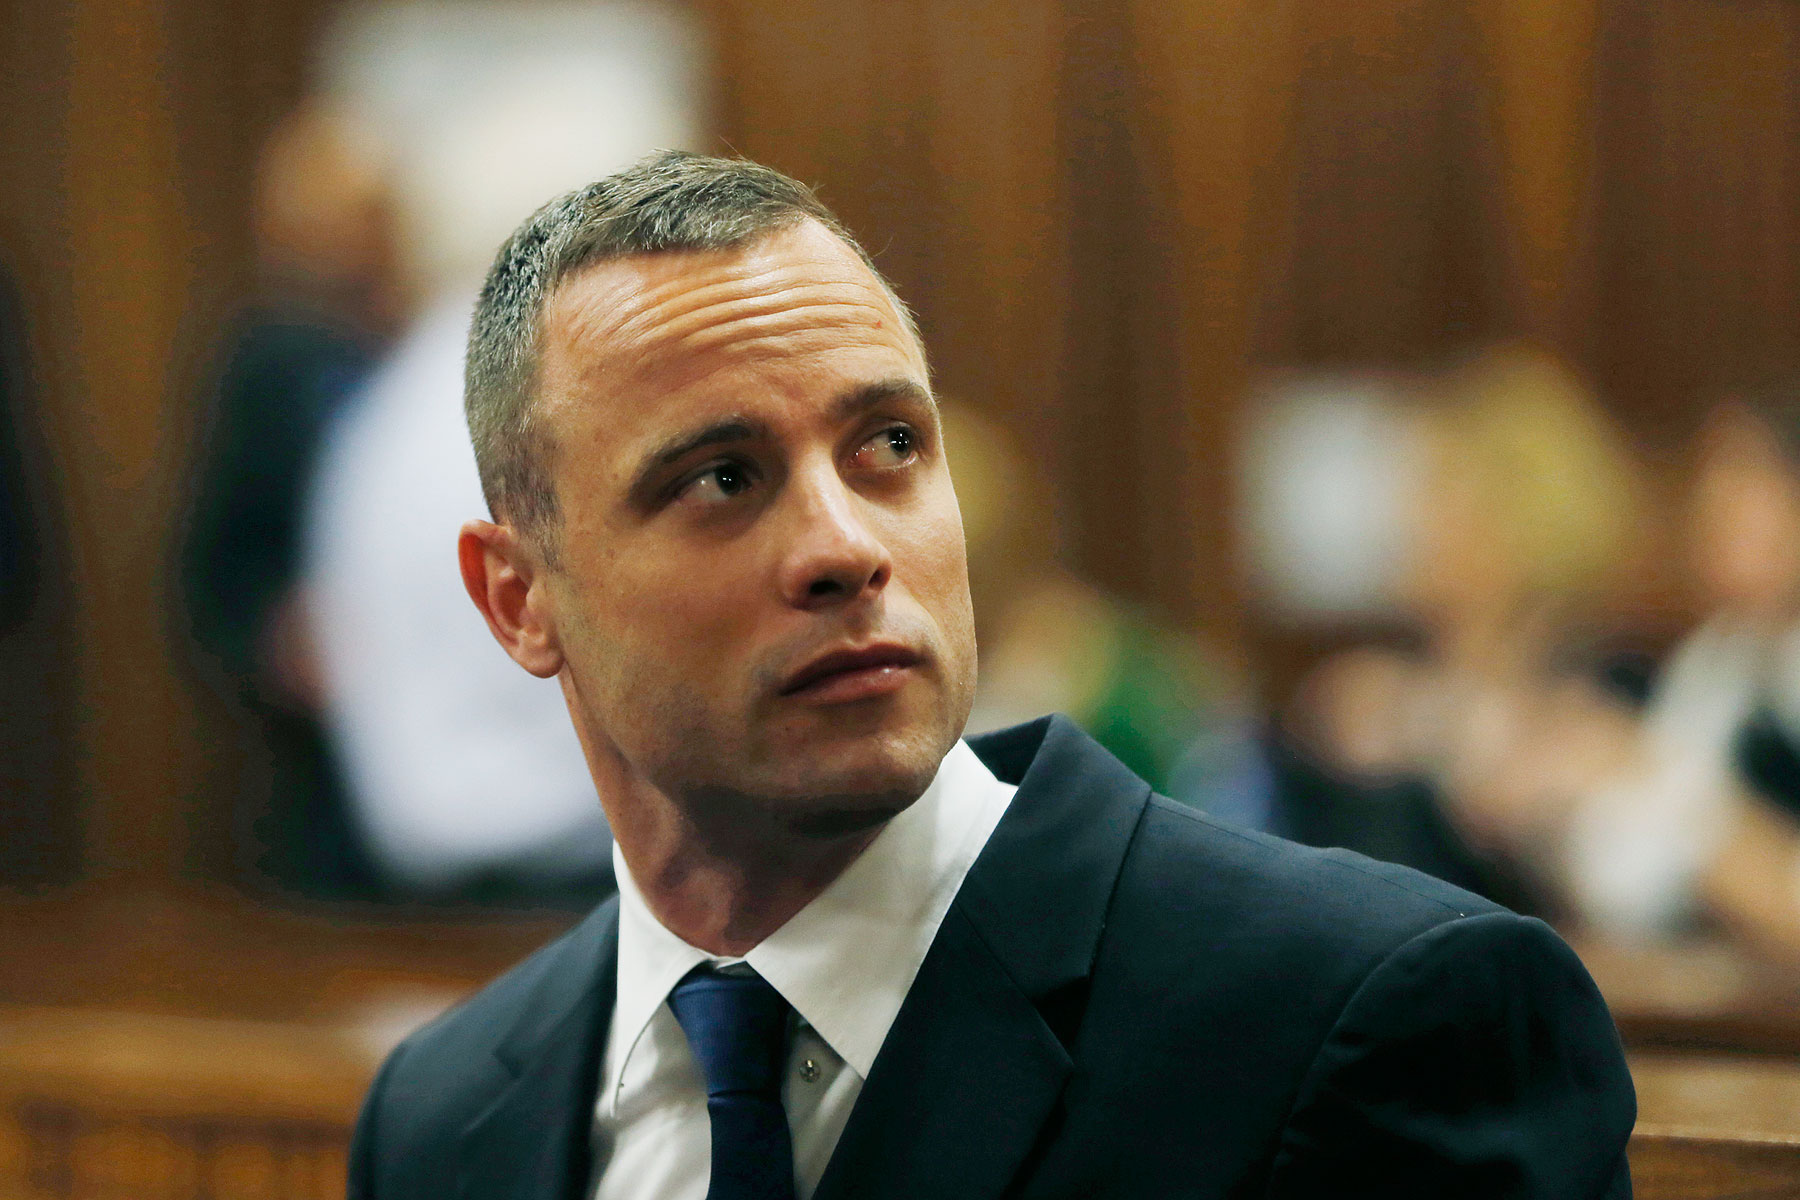 Oscar Pistorius is seated in a courtroom at the high court in Pretoria, South Africa, Tuesday, May 6, 2014